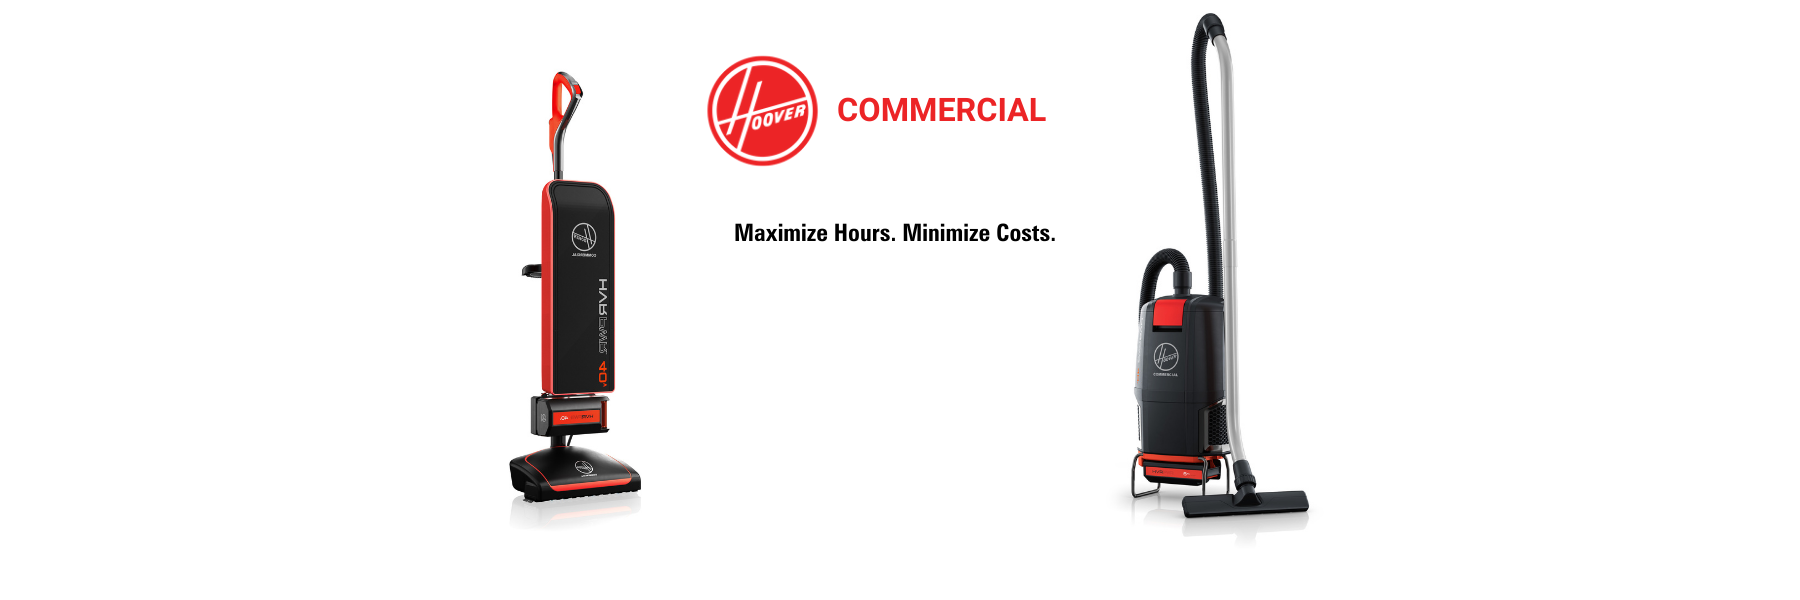 HOOVER Commercial cordless vacuum cleaners.